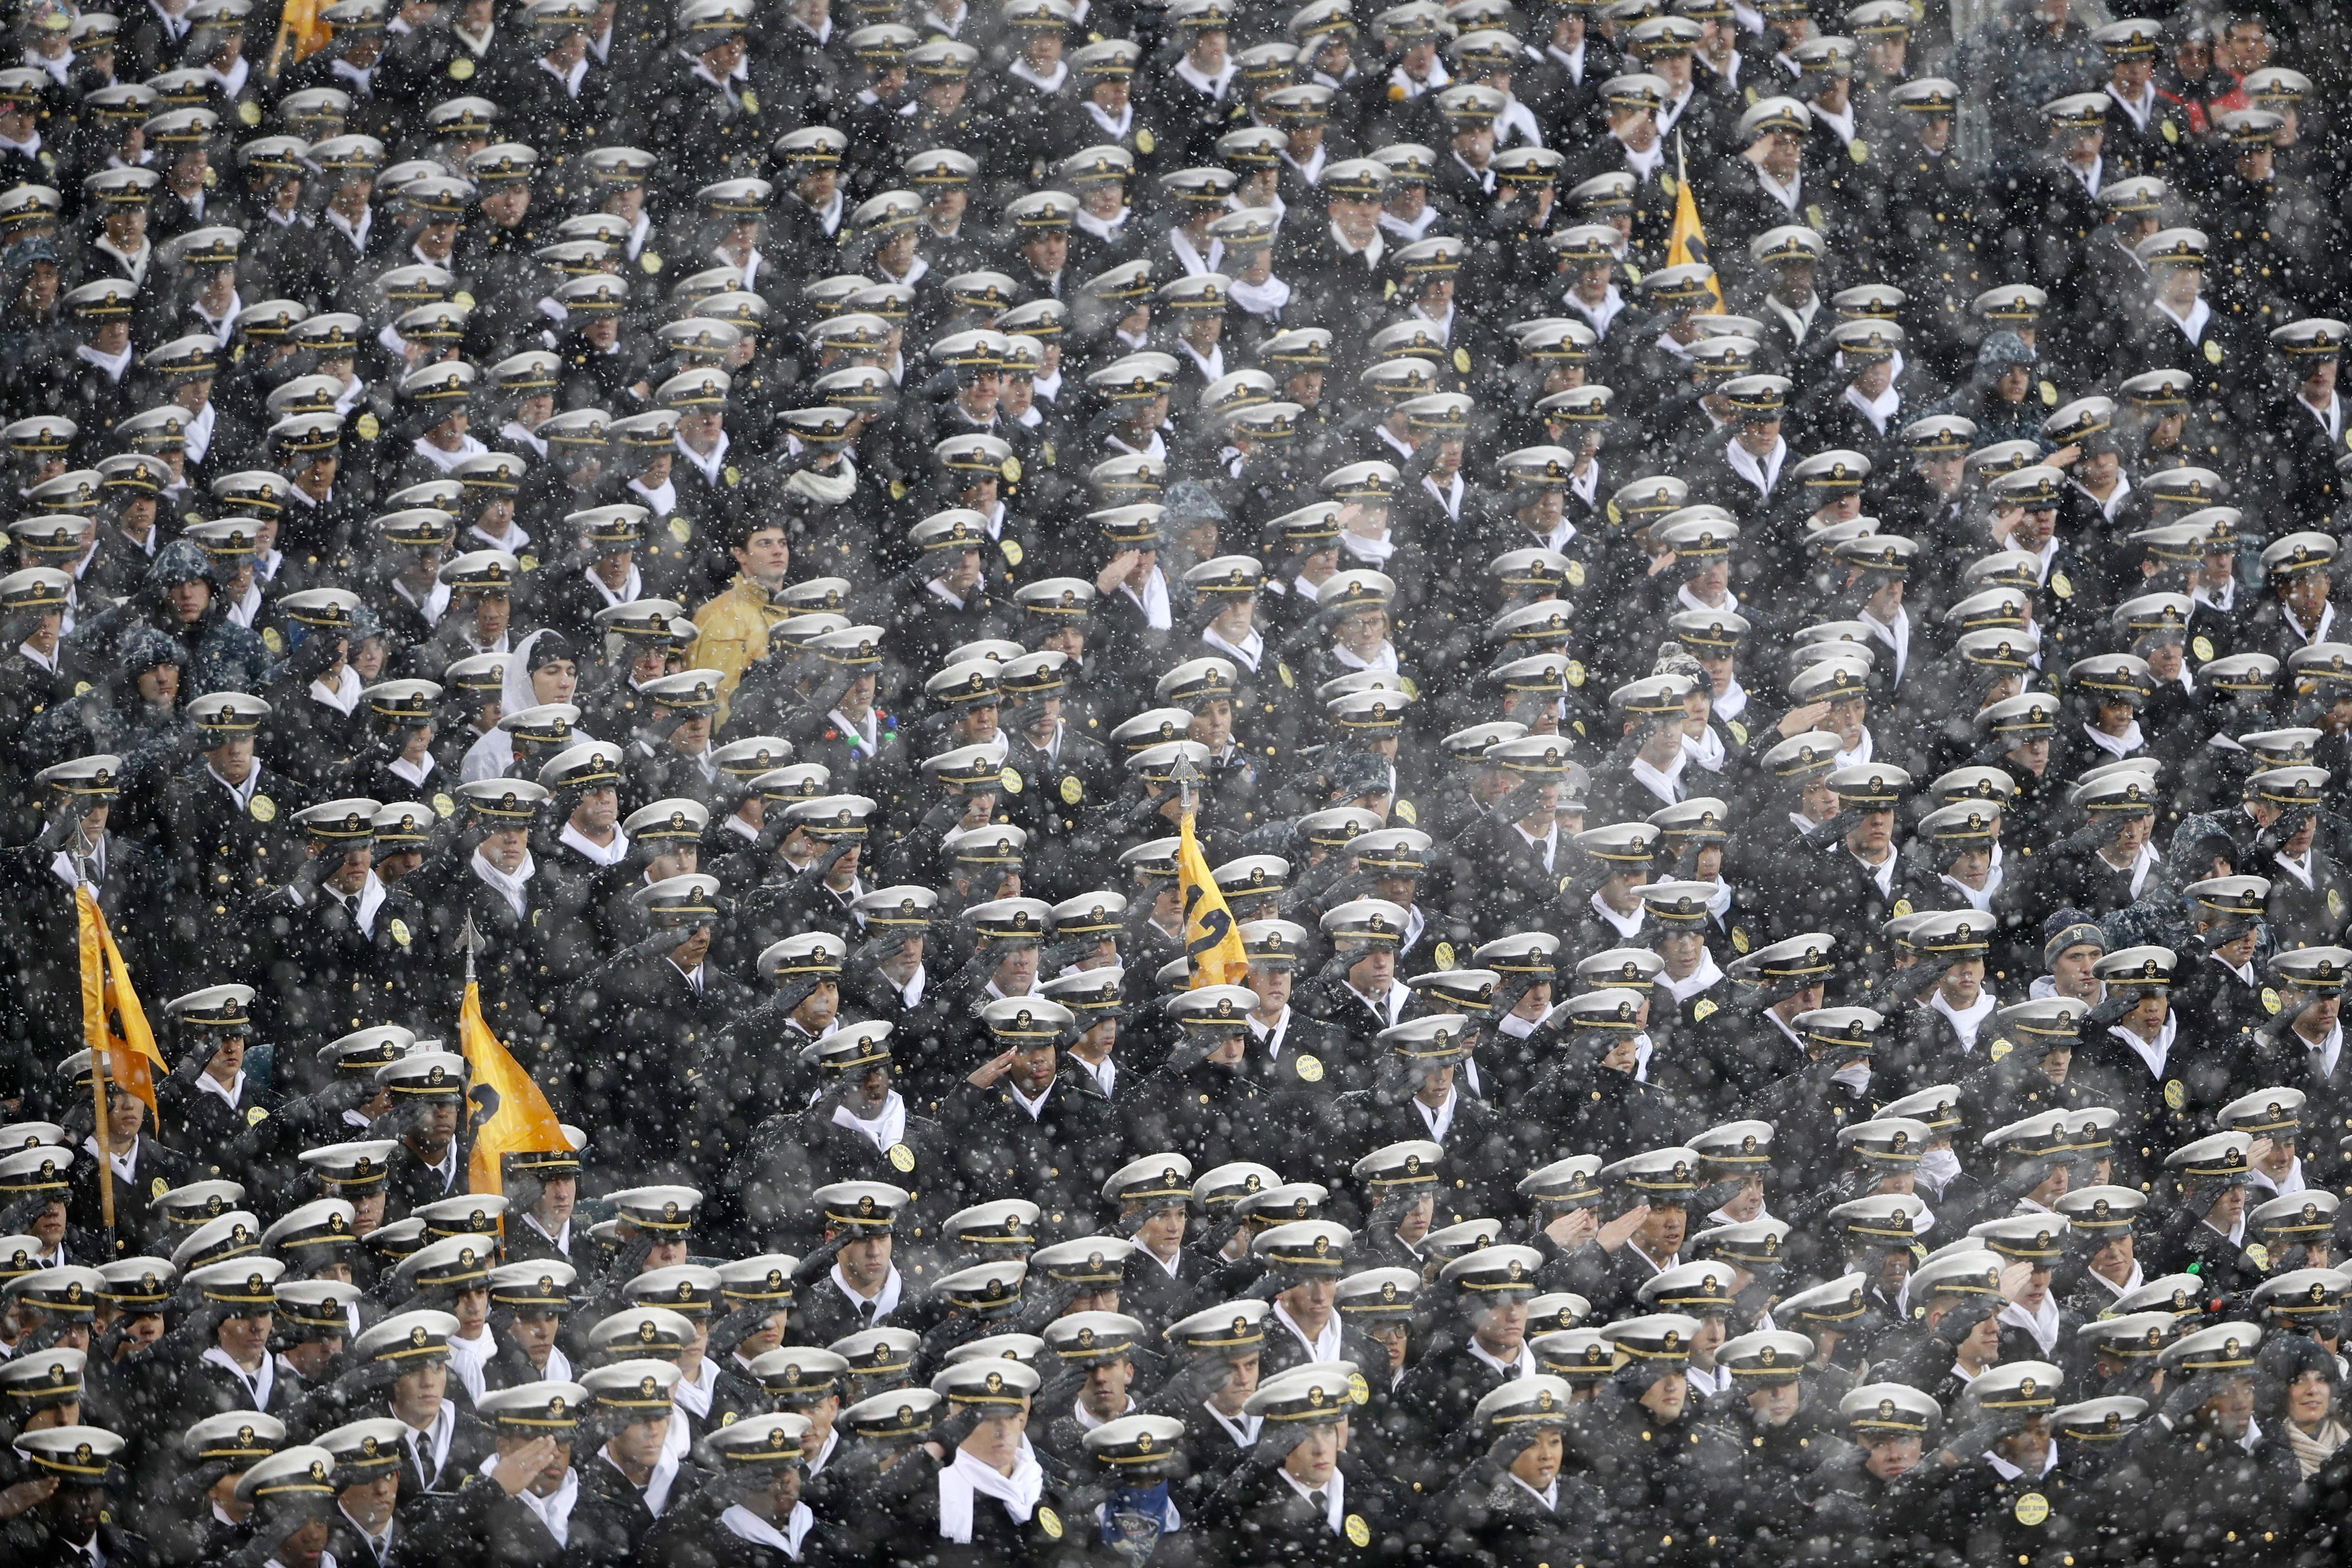 Navy Midshipmen salute during the National Anthem ahead an NCAA college football game between the Army and the Navy, Saturday, Dec. 9, 2017, in Philadelphia. (AP Photo/Matt Rourke)